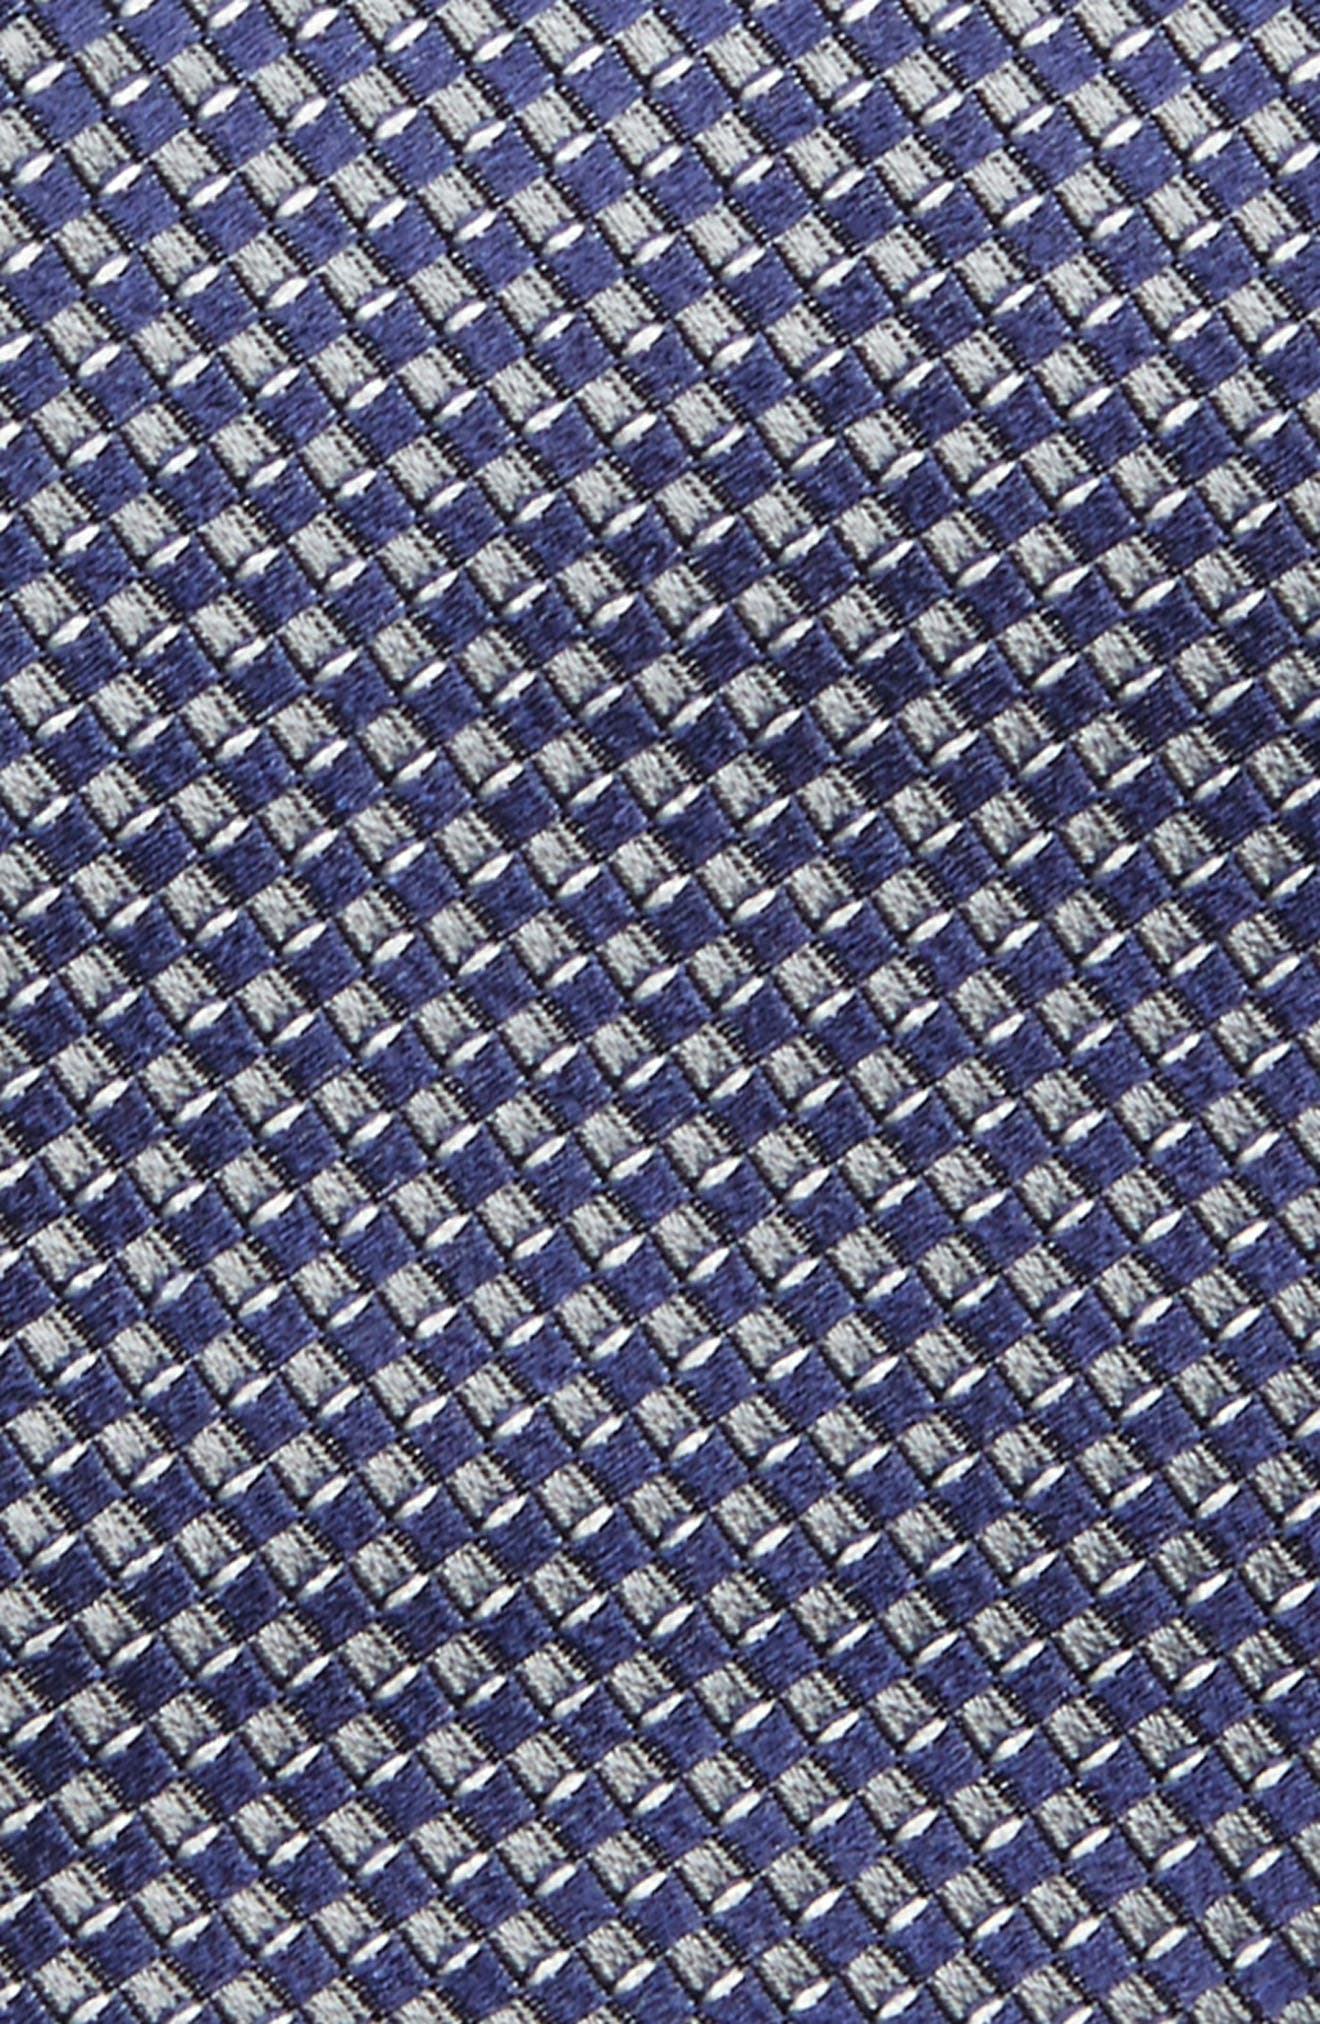 Grid Silk Tie,                             Alternate thumbnail 2, color,                             410